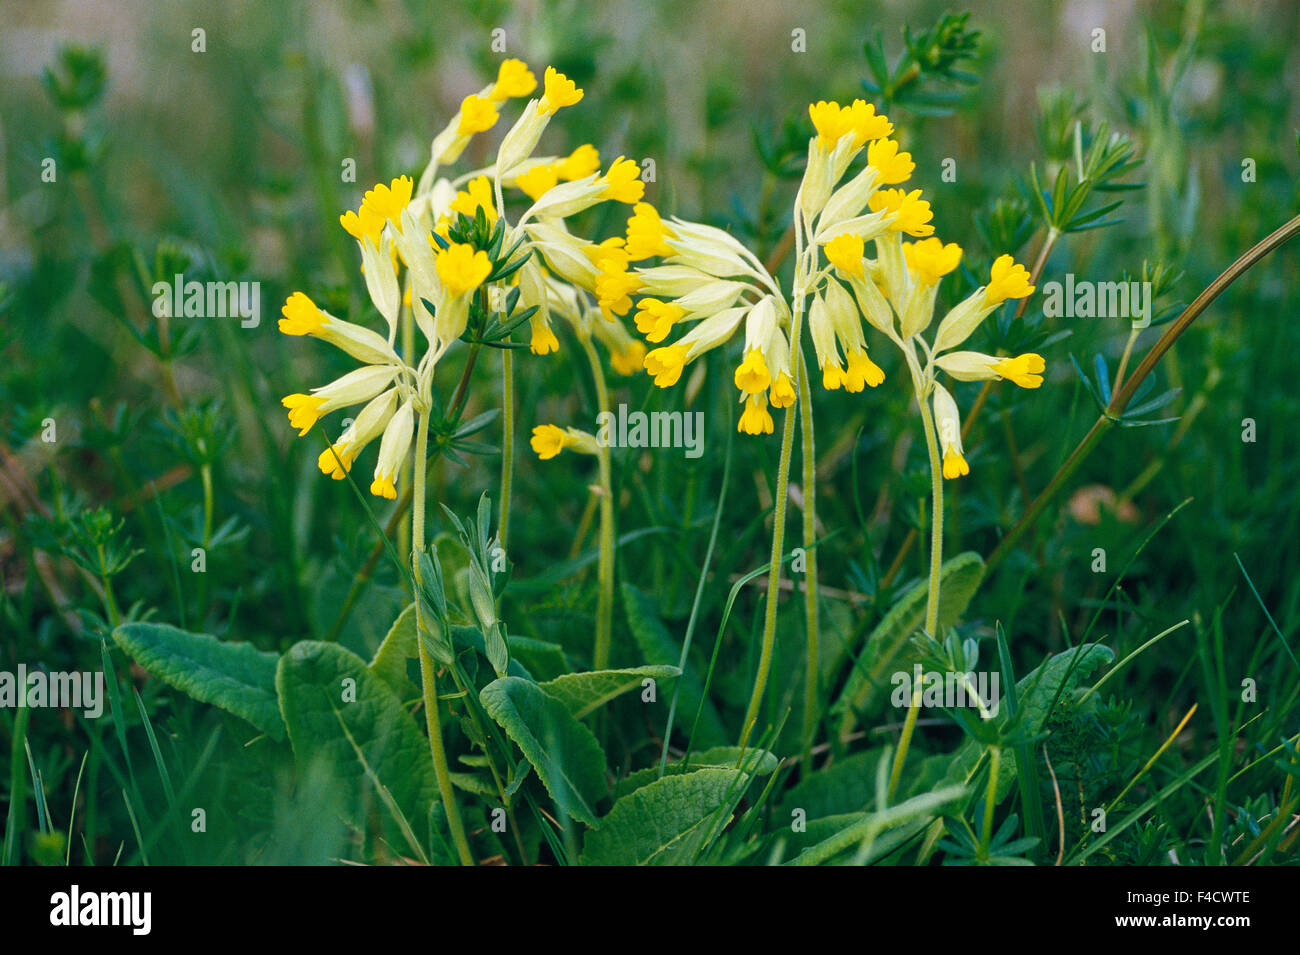 Yellow flowers midst plants, close-up - Stock Image